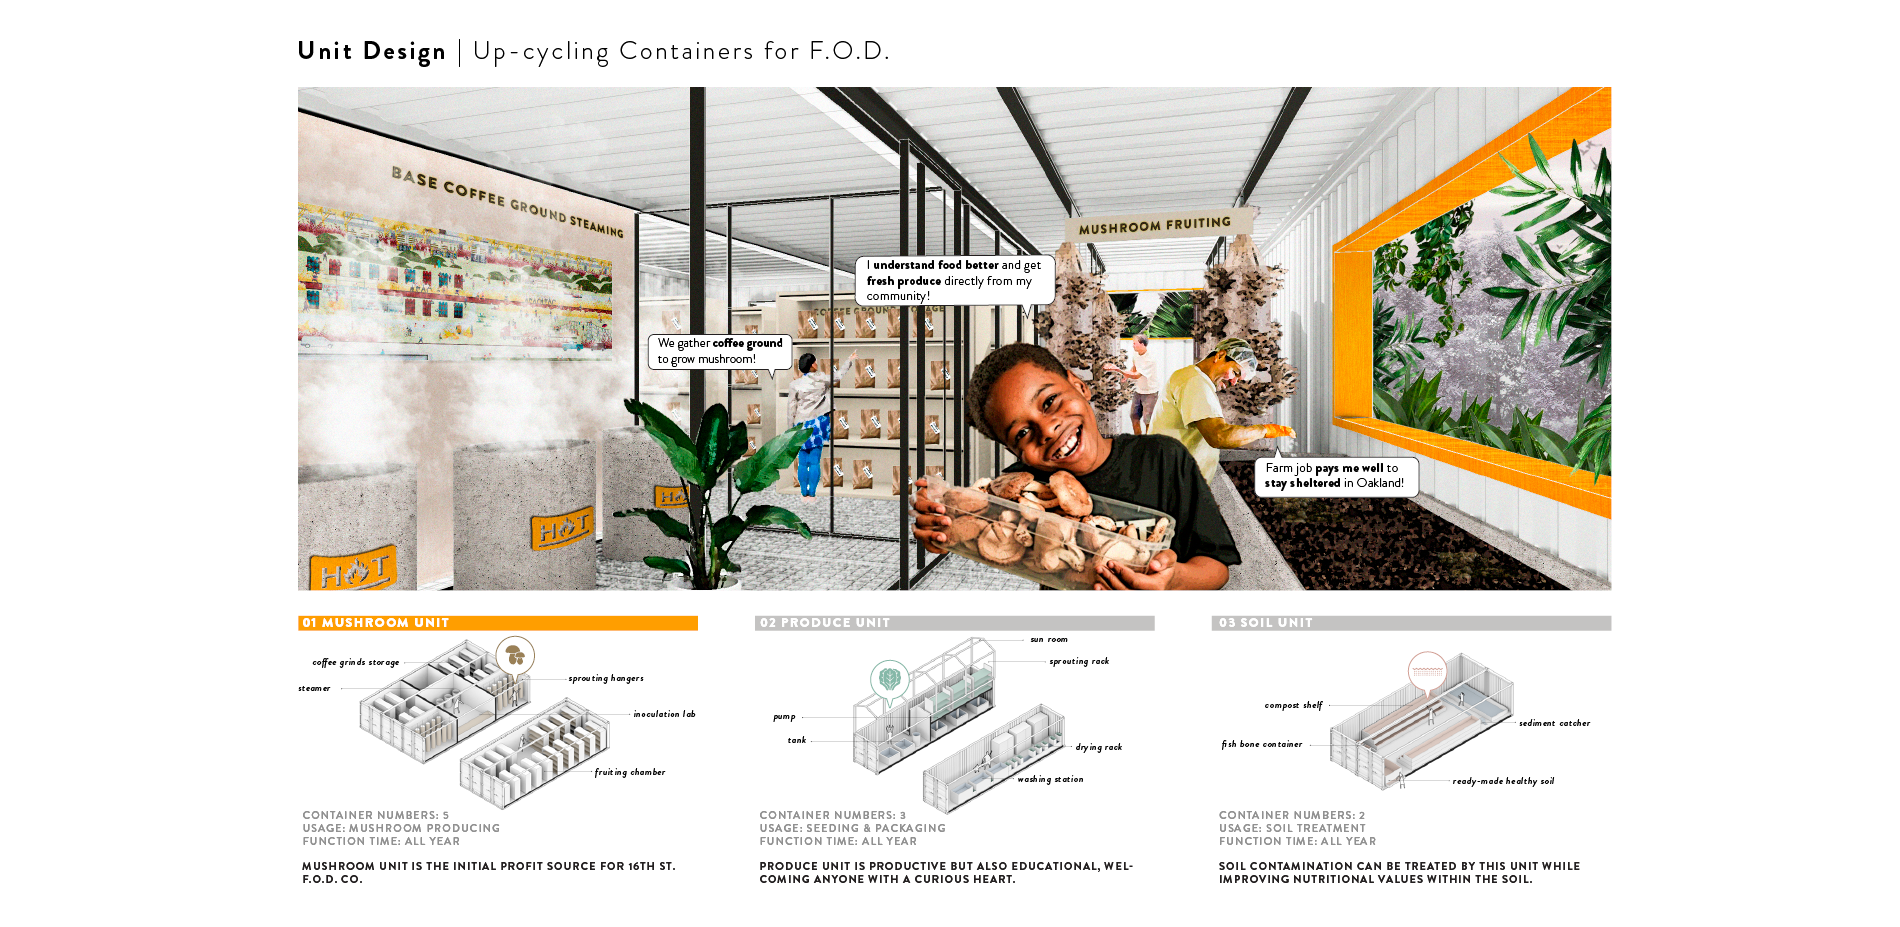 Unit Design | Up-cycling Containers for F.O.D.